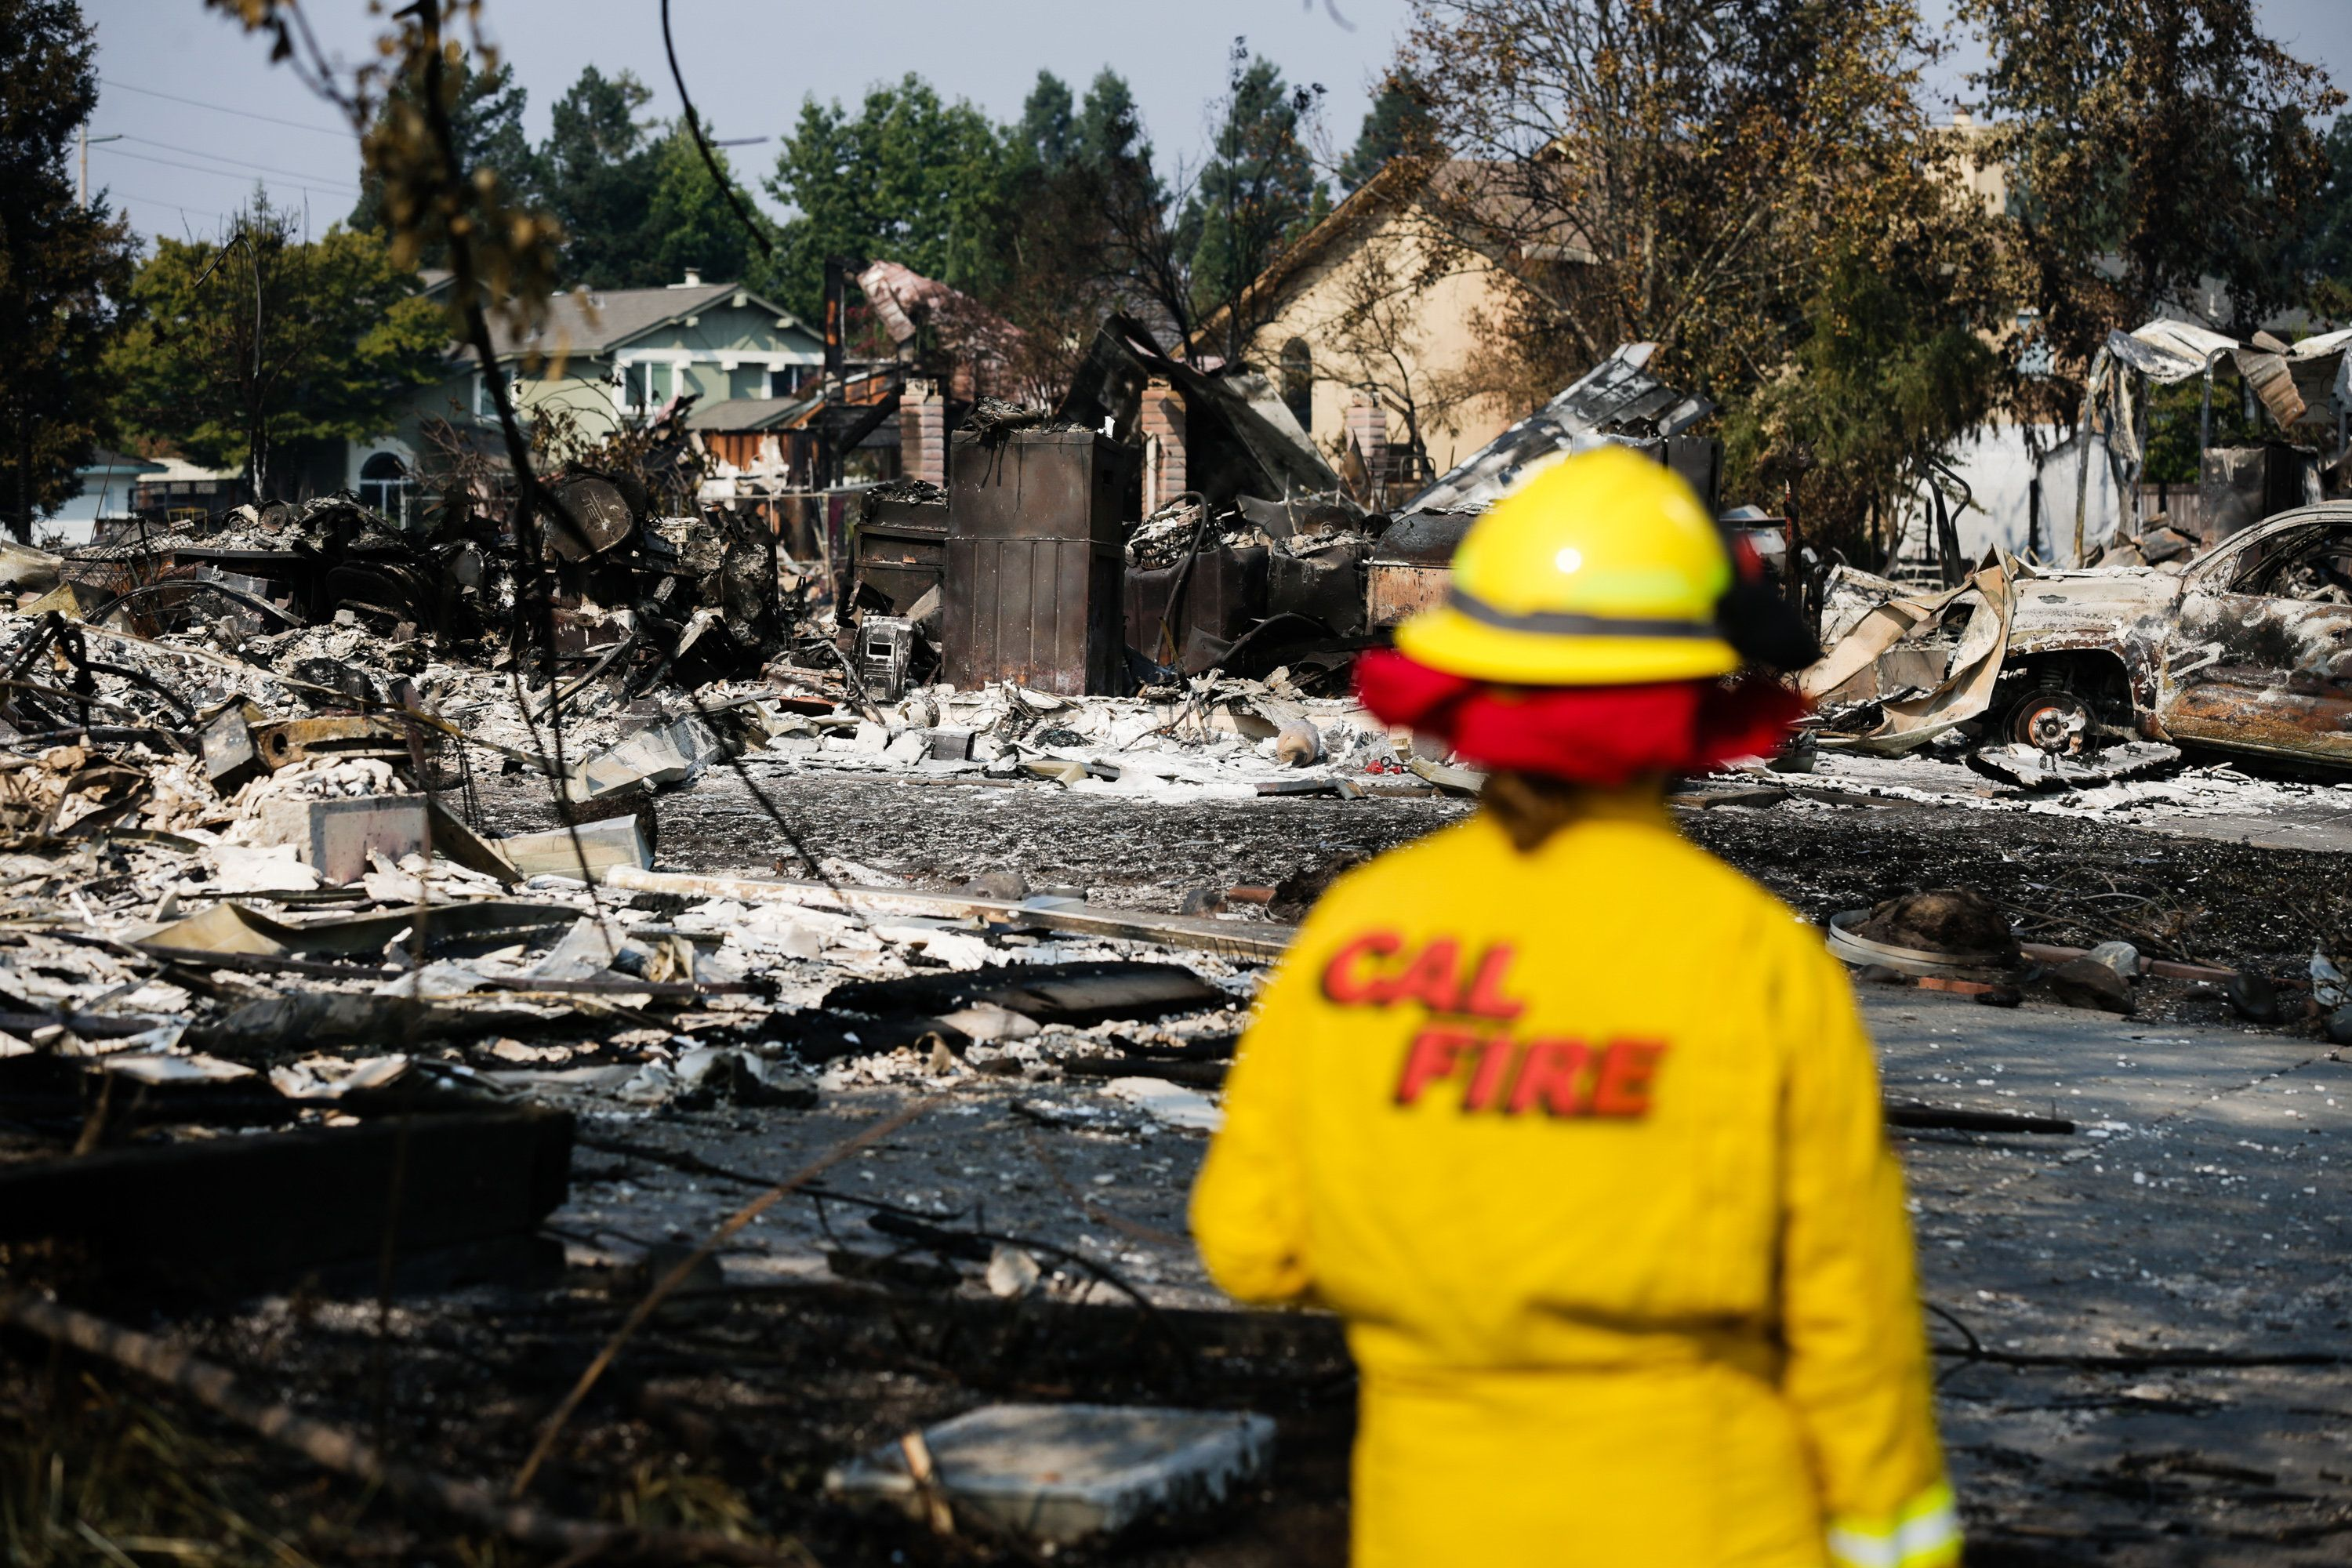 SANTA ROSA, CA - OCTOBER 13: A Cal Fire employee surveys damage in the Coffey Park neighborhood caused by the Tubbs Fire on October 13, 2017 in Santa Rosa, California. Twenty four people have died in wildfires that have burned tens of thousands of acres and destroyed over 3,500 homes and businesses in several Northern California counties.  (Photo by Elijah Nouvelage/Getty Images)